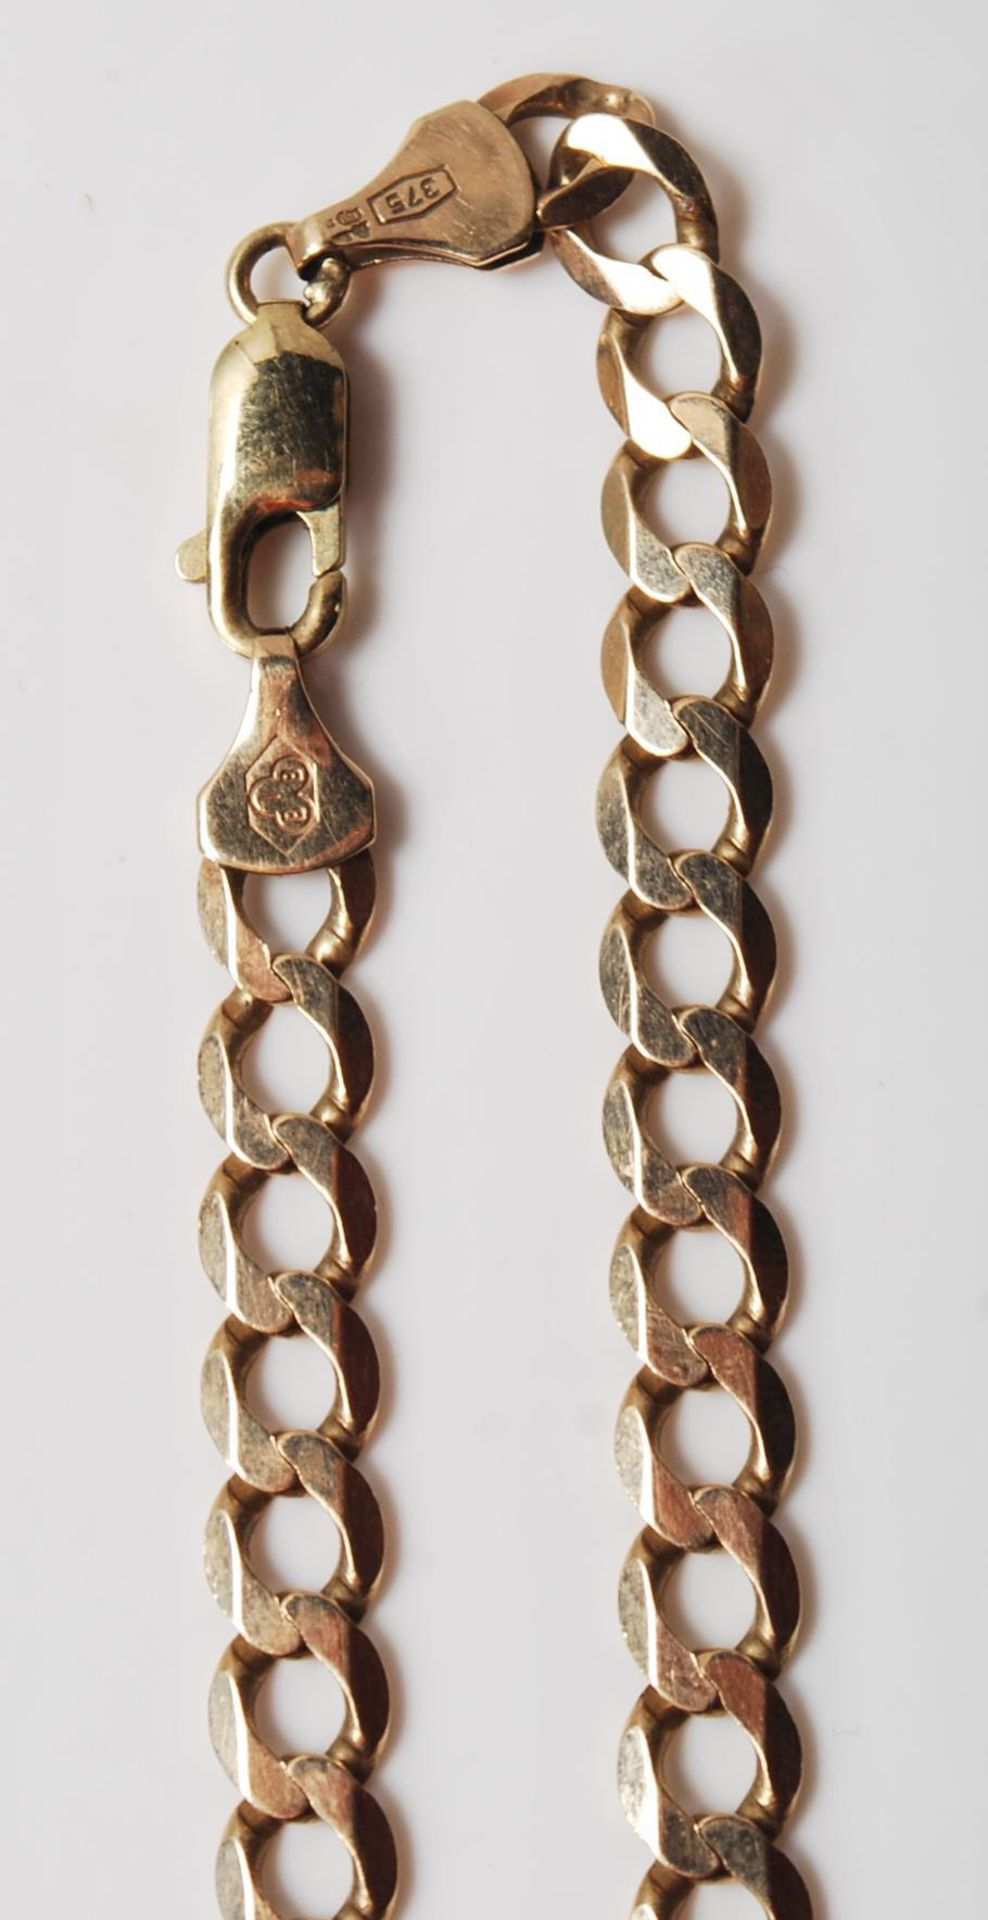 9CT GOLD FLAT LINK NECKLACE CHAIN - Image 2 of 7